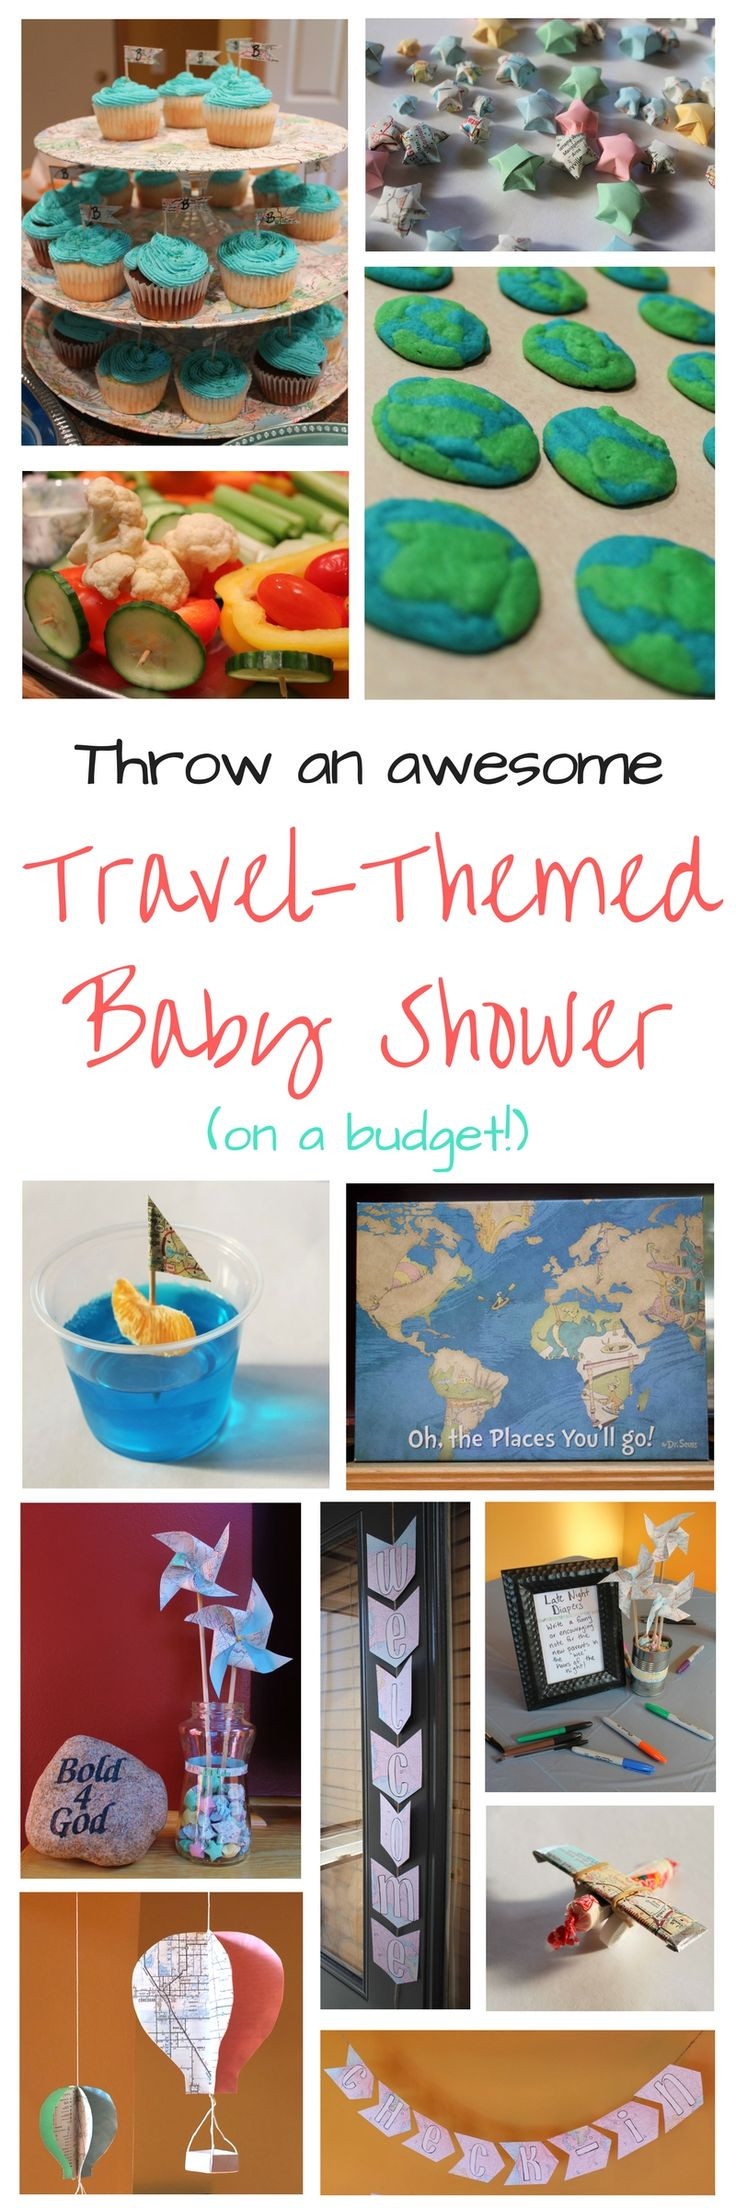 Best ideas about Gift Ideas For Someone Who Just Had A Baby . Save or Pin Best 25 Bud baby shower ideas on Pinterest Now.